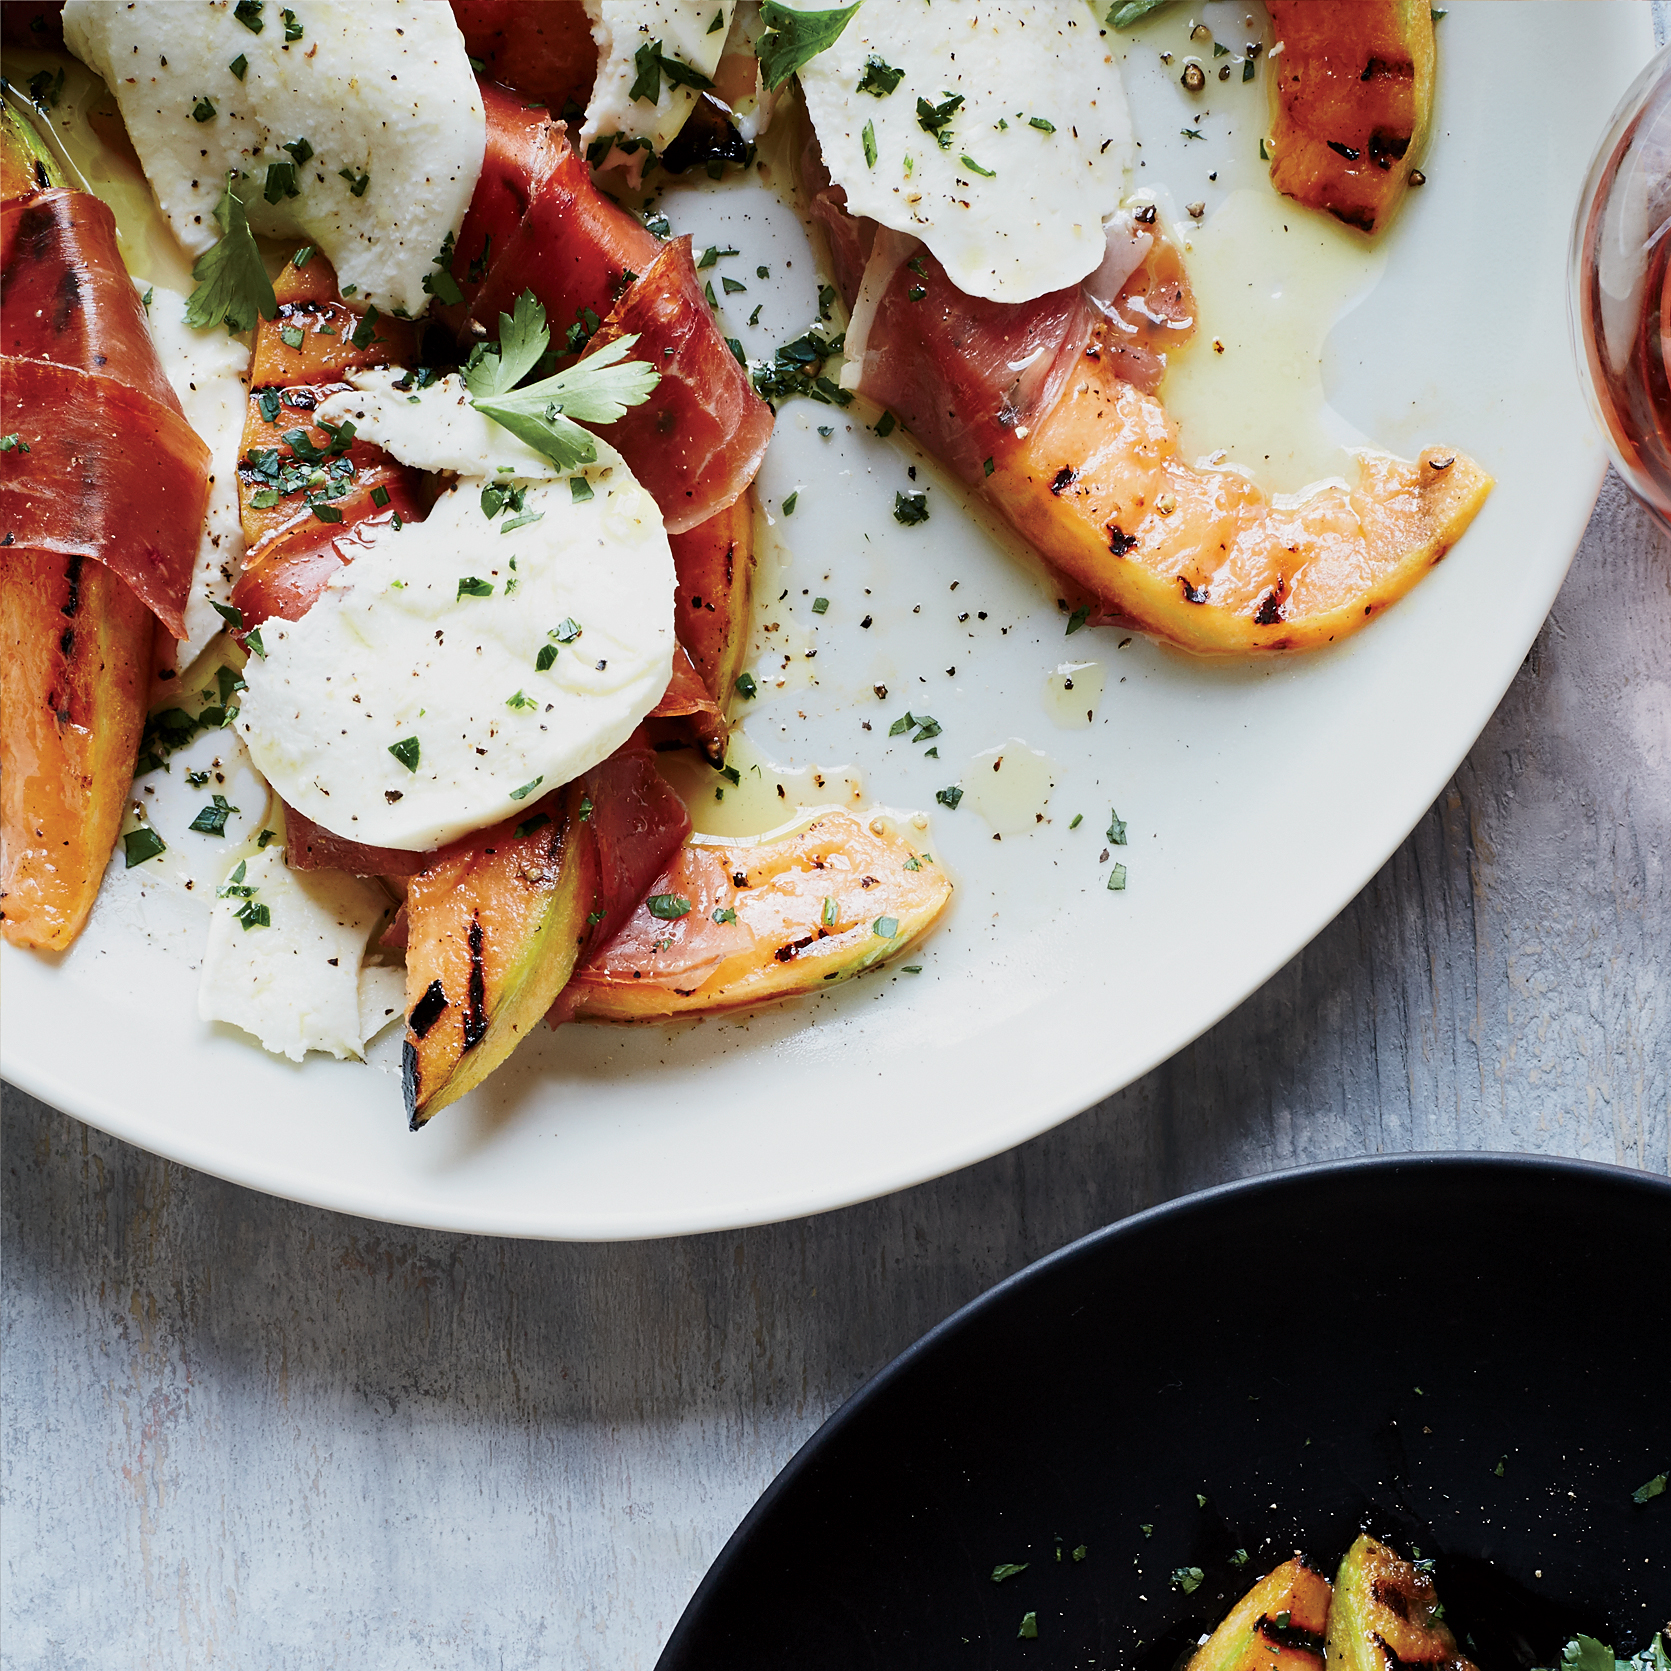 Grilled Cantaloupe with Prosciutto and Mozzarella